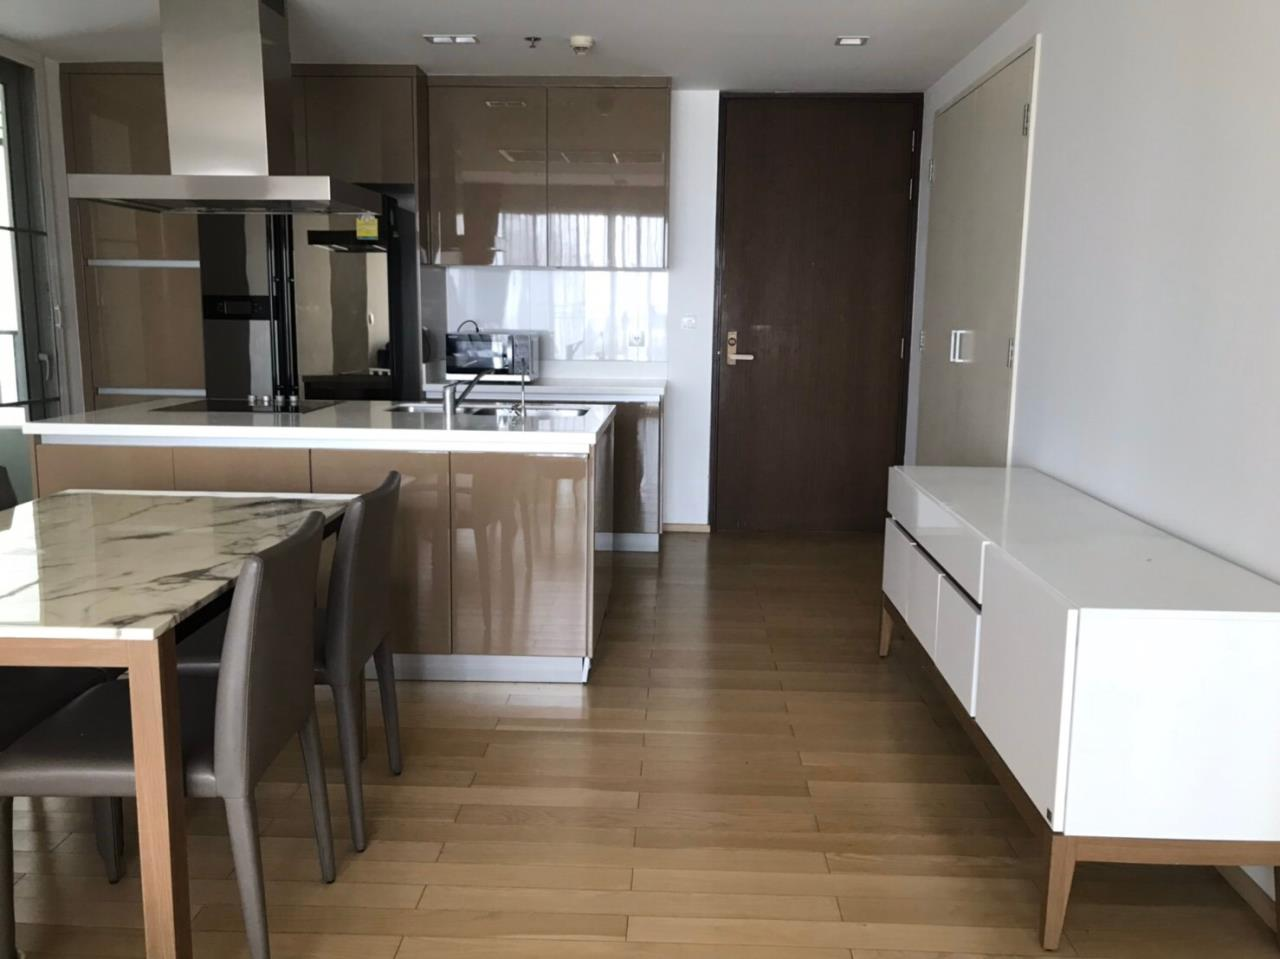 Bestbkkcondos Agency's Thonglor - 100sqm - For Rent : 55K ฿ / Month - 3 Bedrooms 1